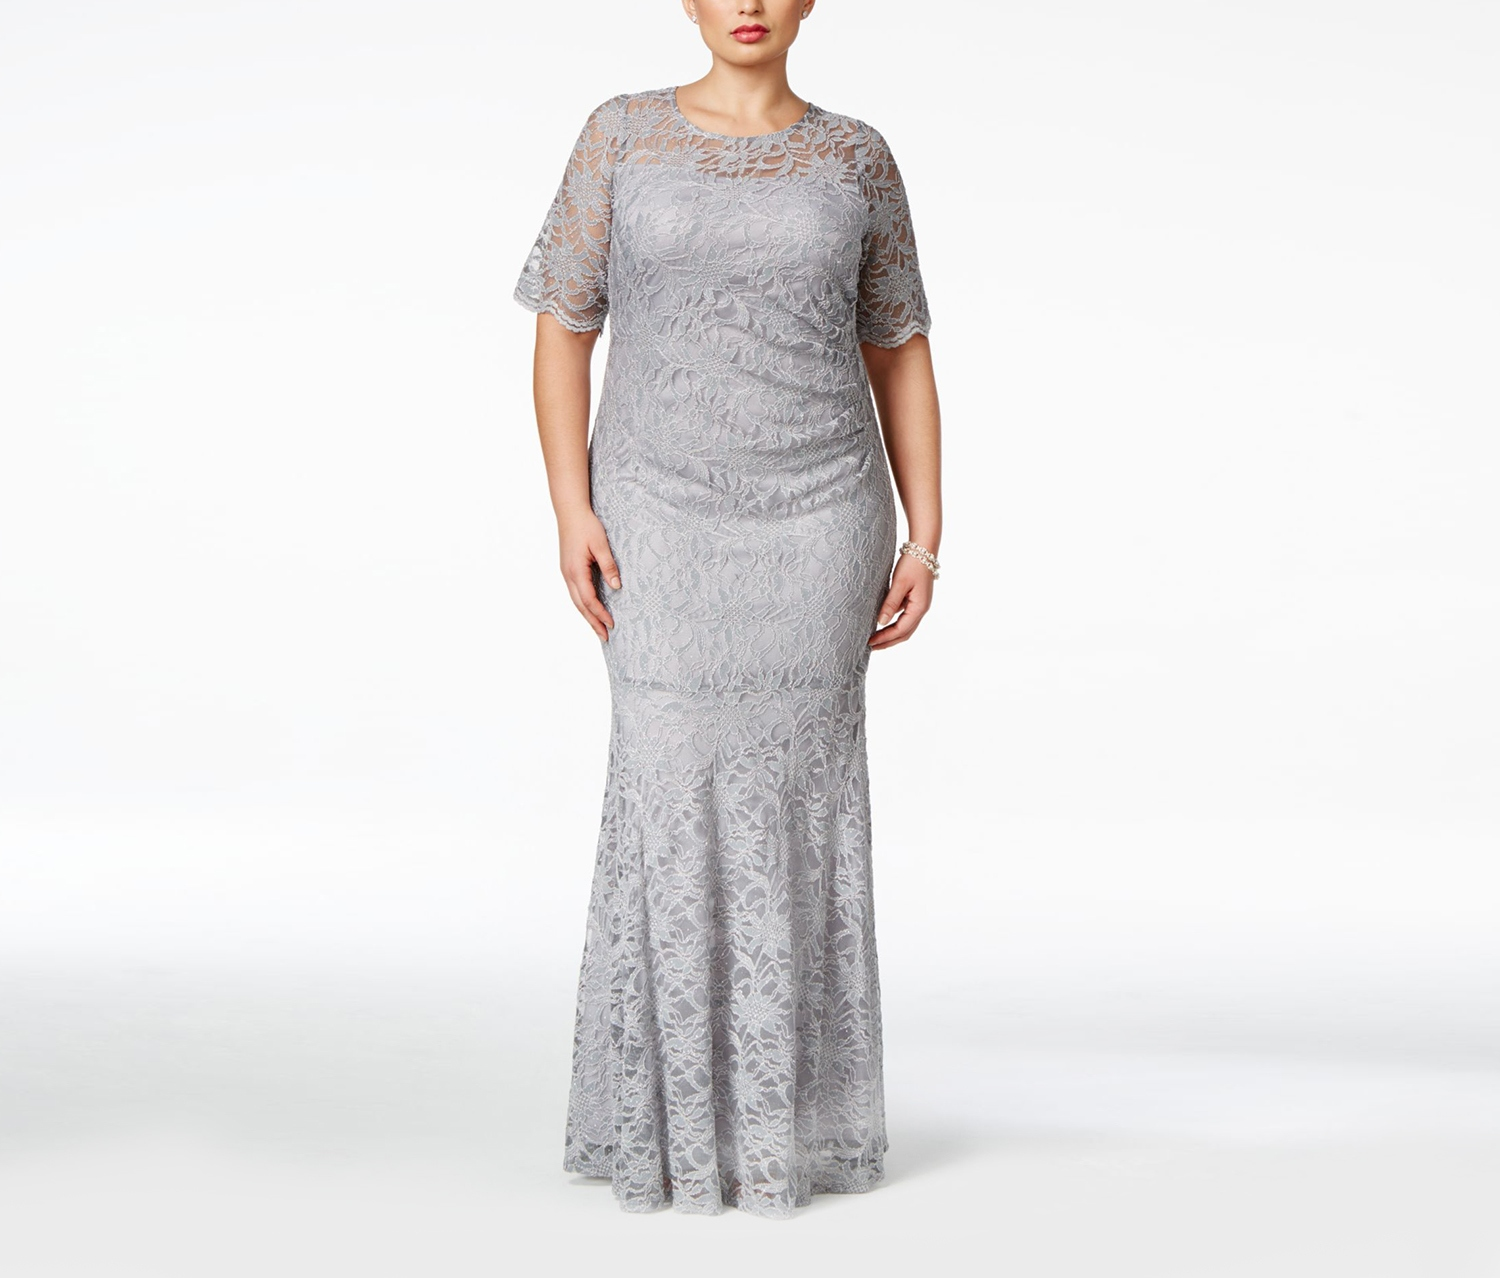 Xscape Plus Size Lace Shimmer Mermaid Gown, Grey - Brands For Less